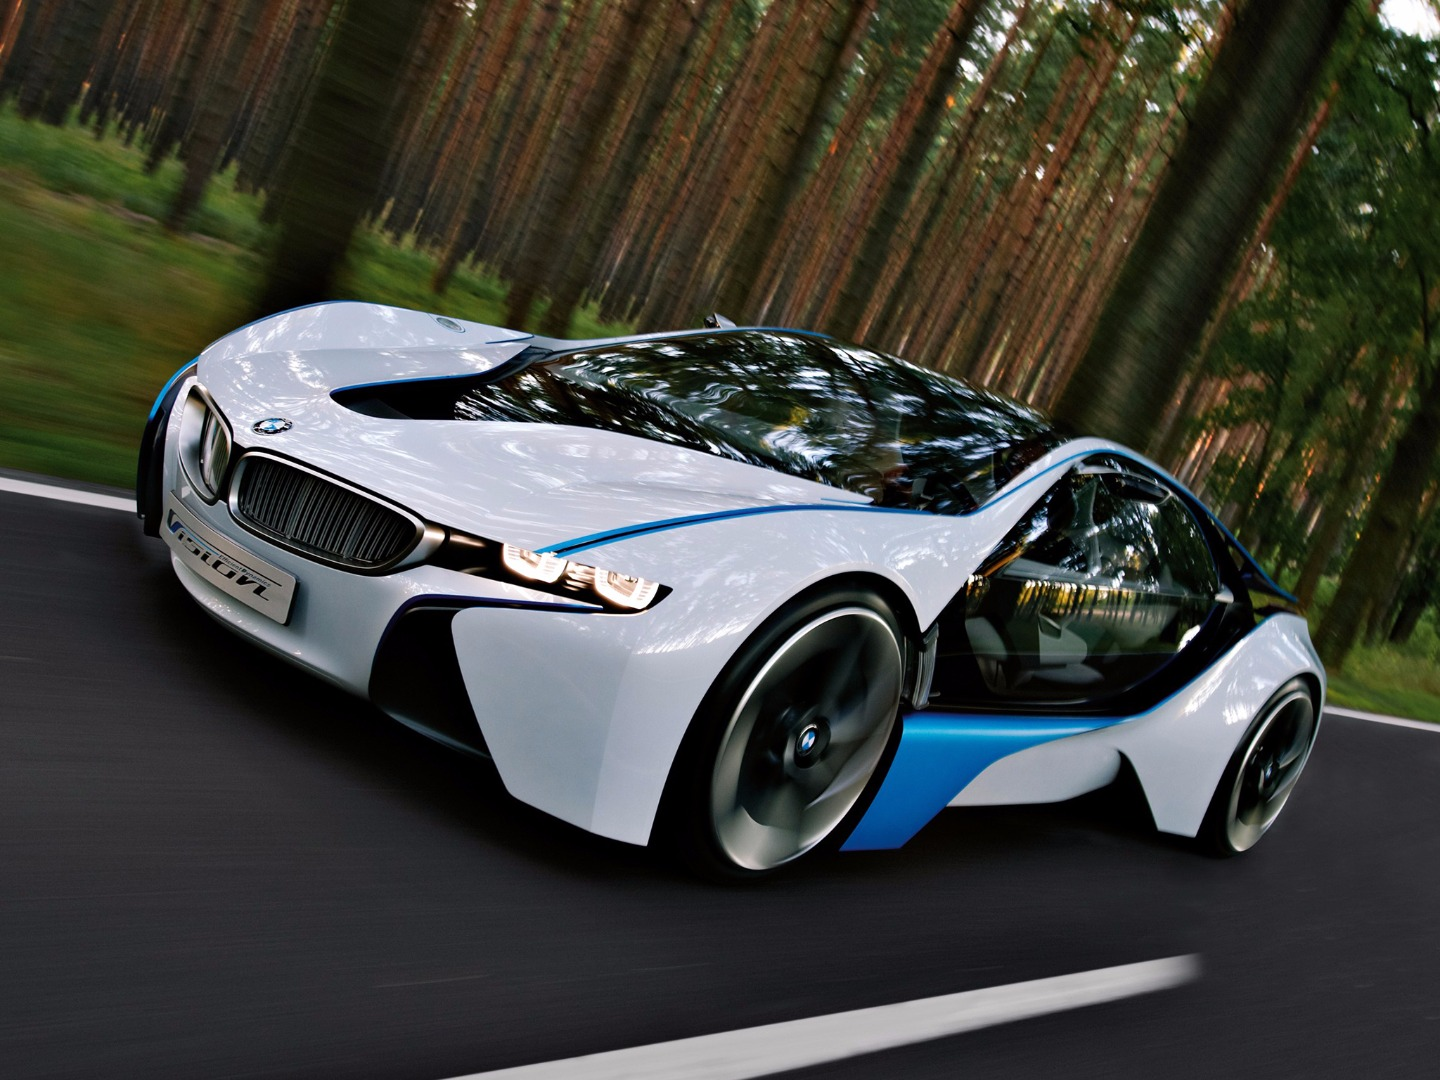 News Next Bmw I8 Could Ditch Petrol Engine For Big Electric Power